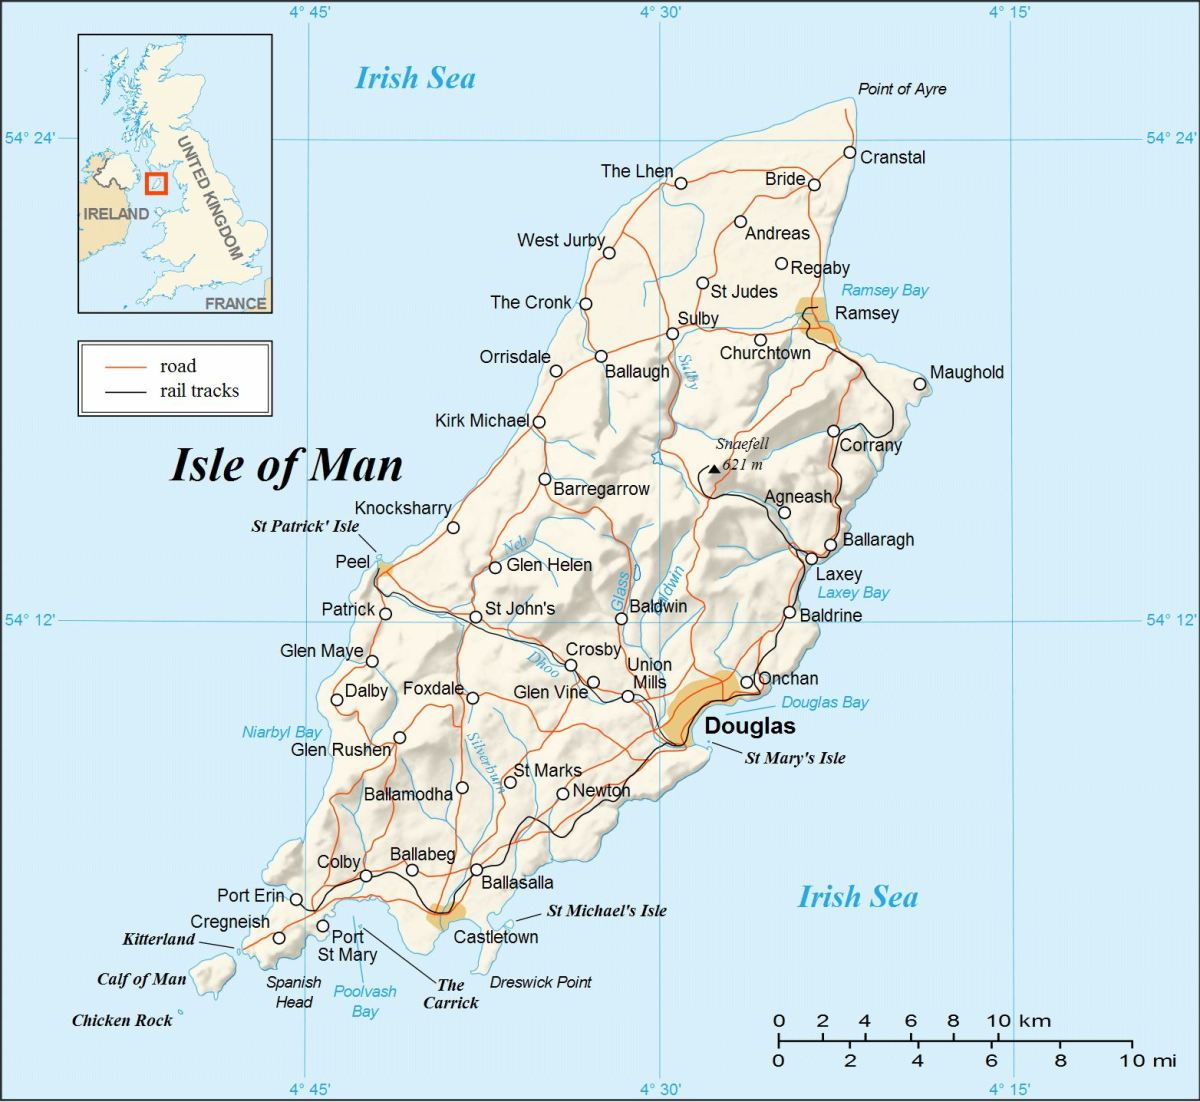 The Isle of Man, situated halfway between England and Ireland, and the same distance from Scotland, the isle is handy in the centre of the Irish Sea for tourists